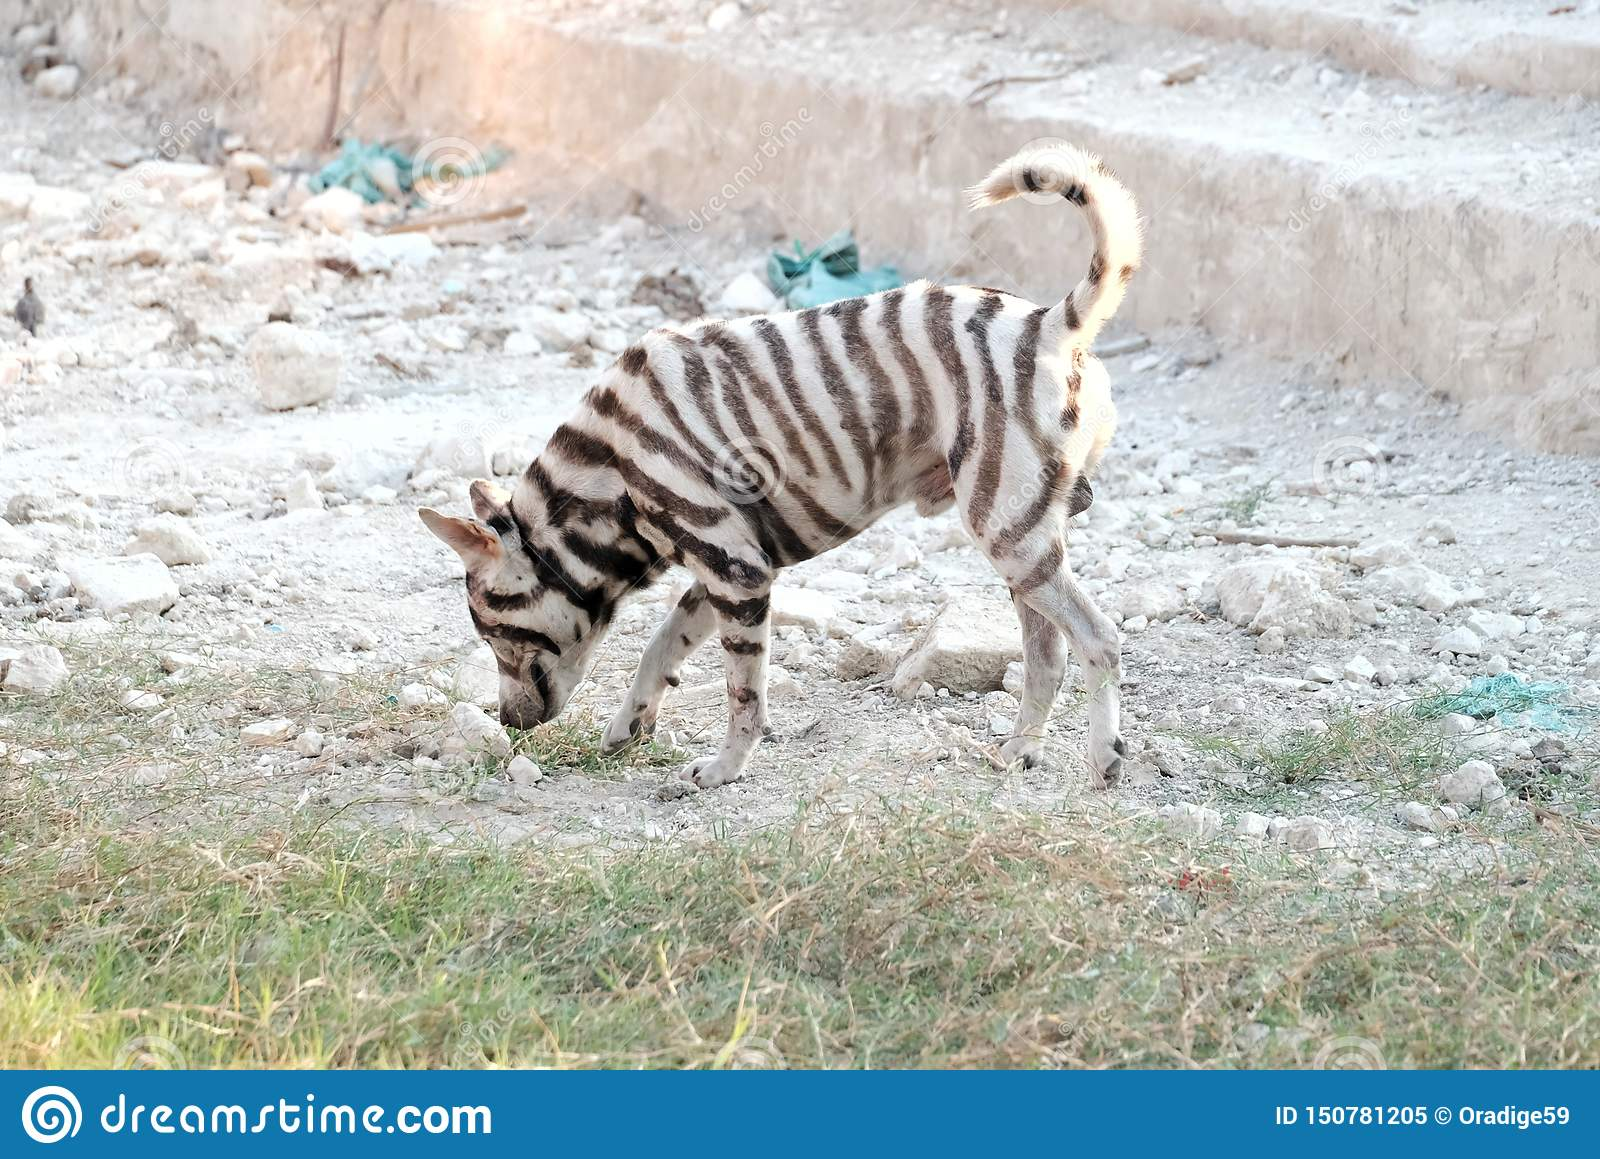 Homeless dog with a zebra pattern on skin standing